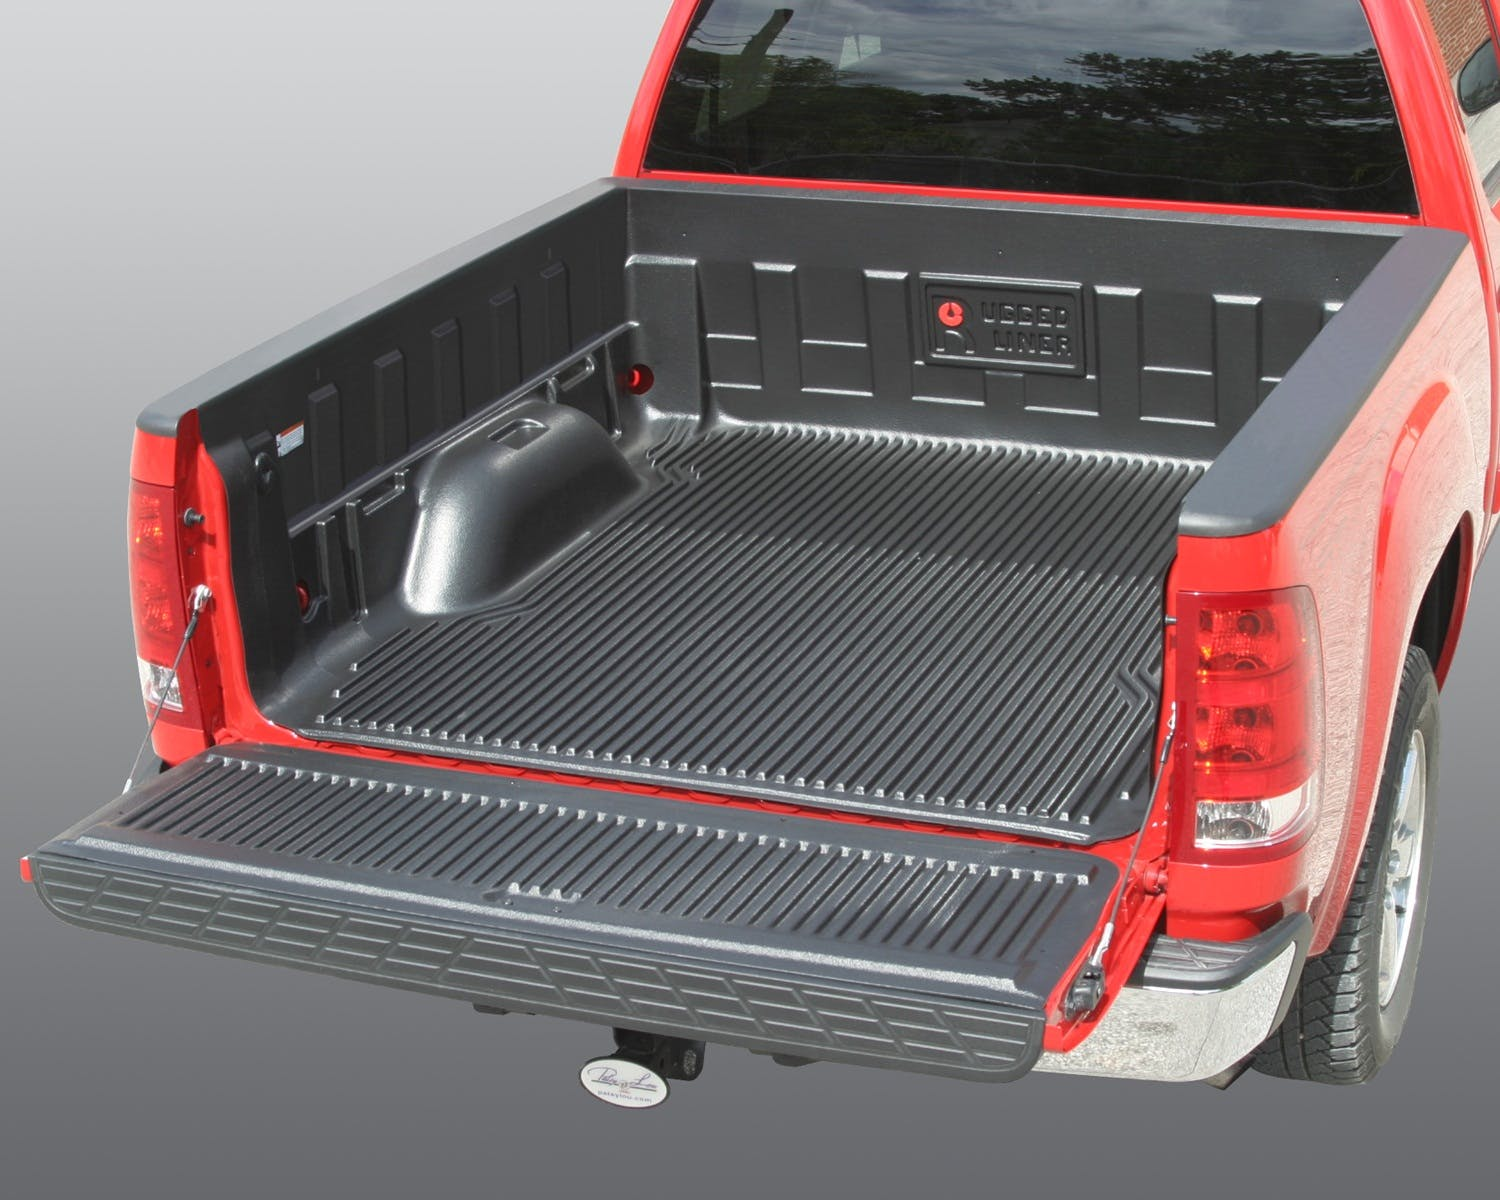 Rugged Liner E-Series Hard Folding Truck Bed Tonneau Cover Fits 2019-2021 New Body Style GMC//Chevy Sierra//Silverado 5 10 Bed EH-C5819 69.9